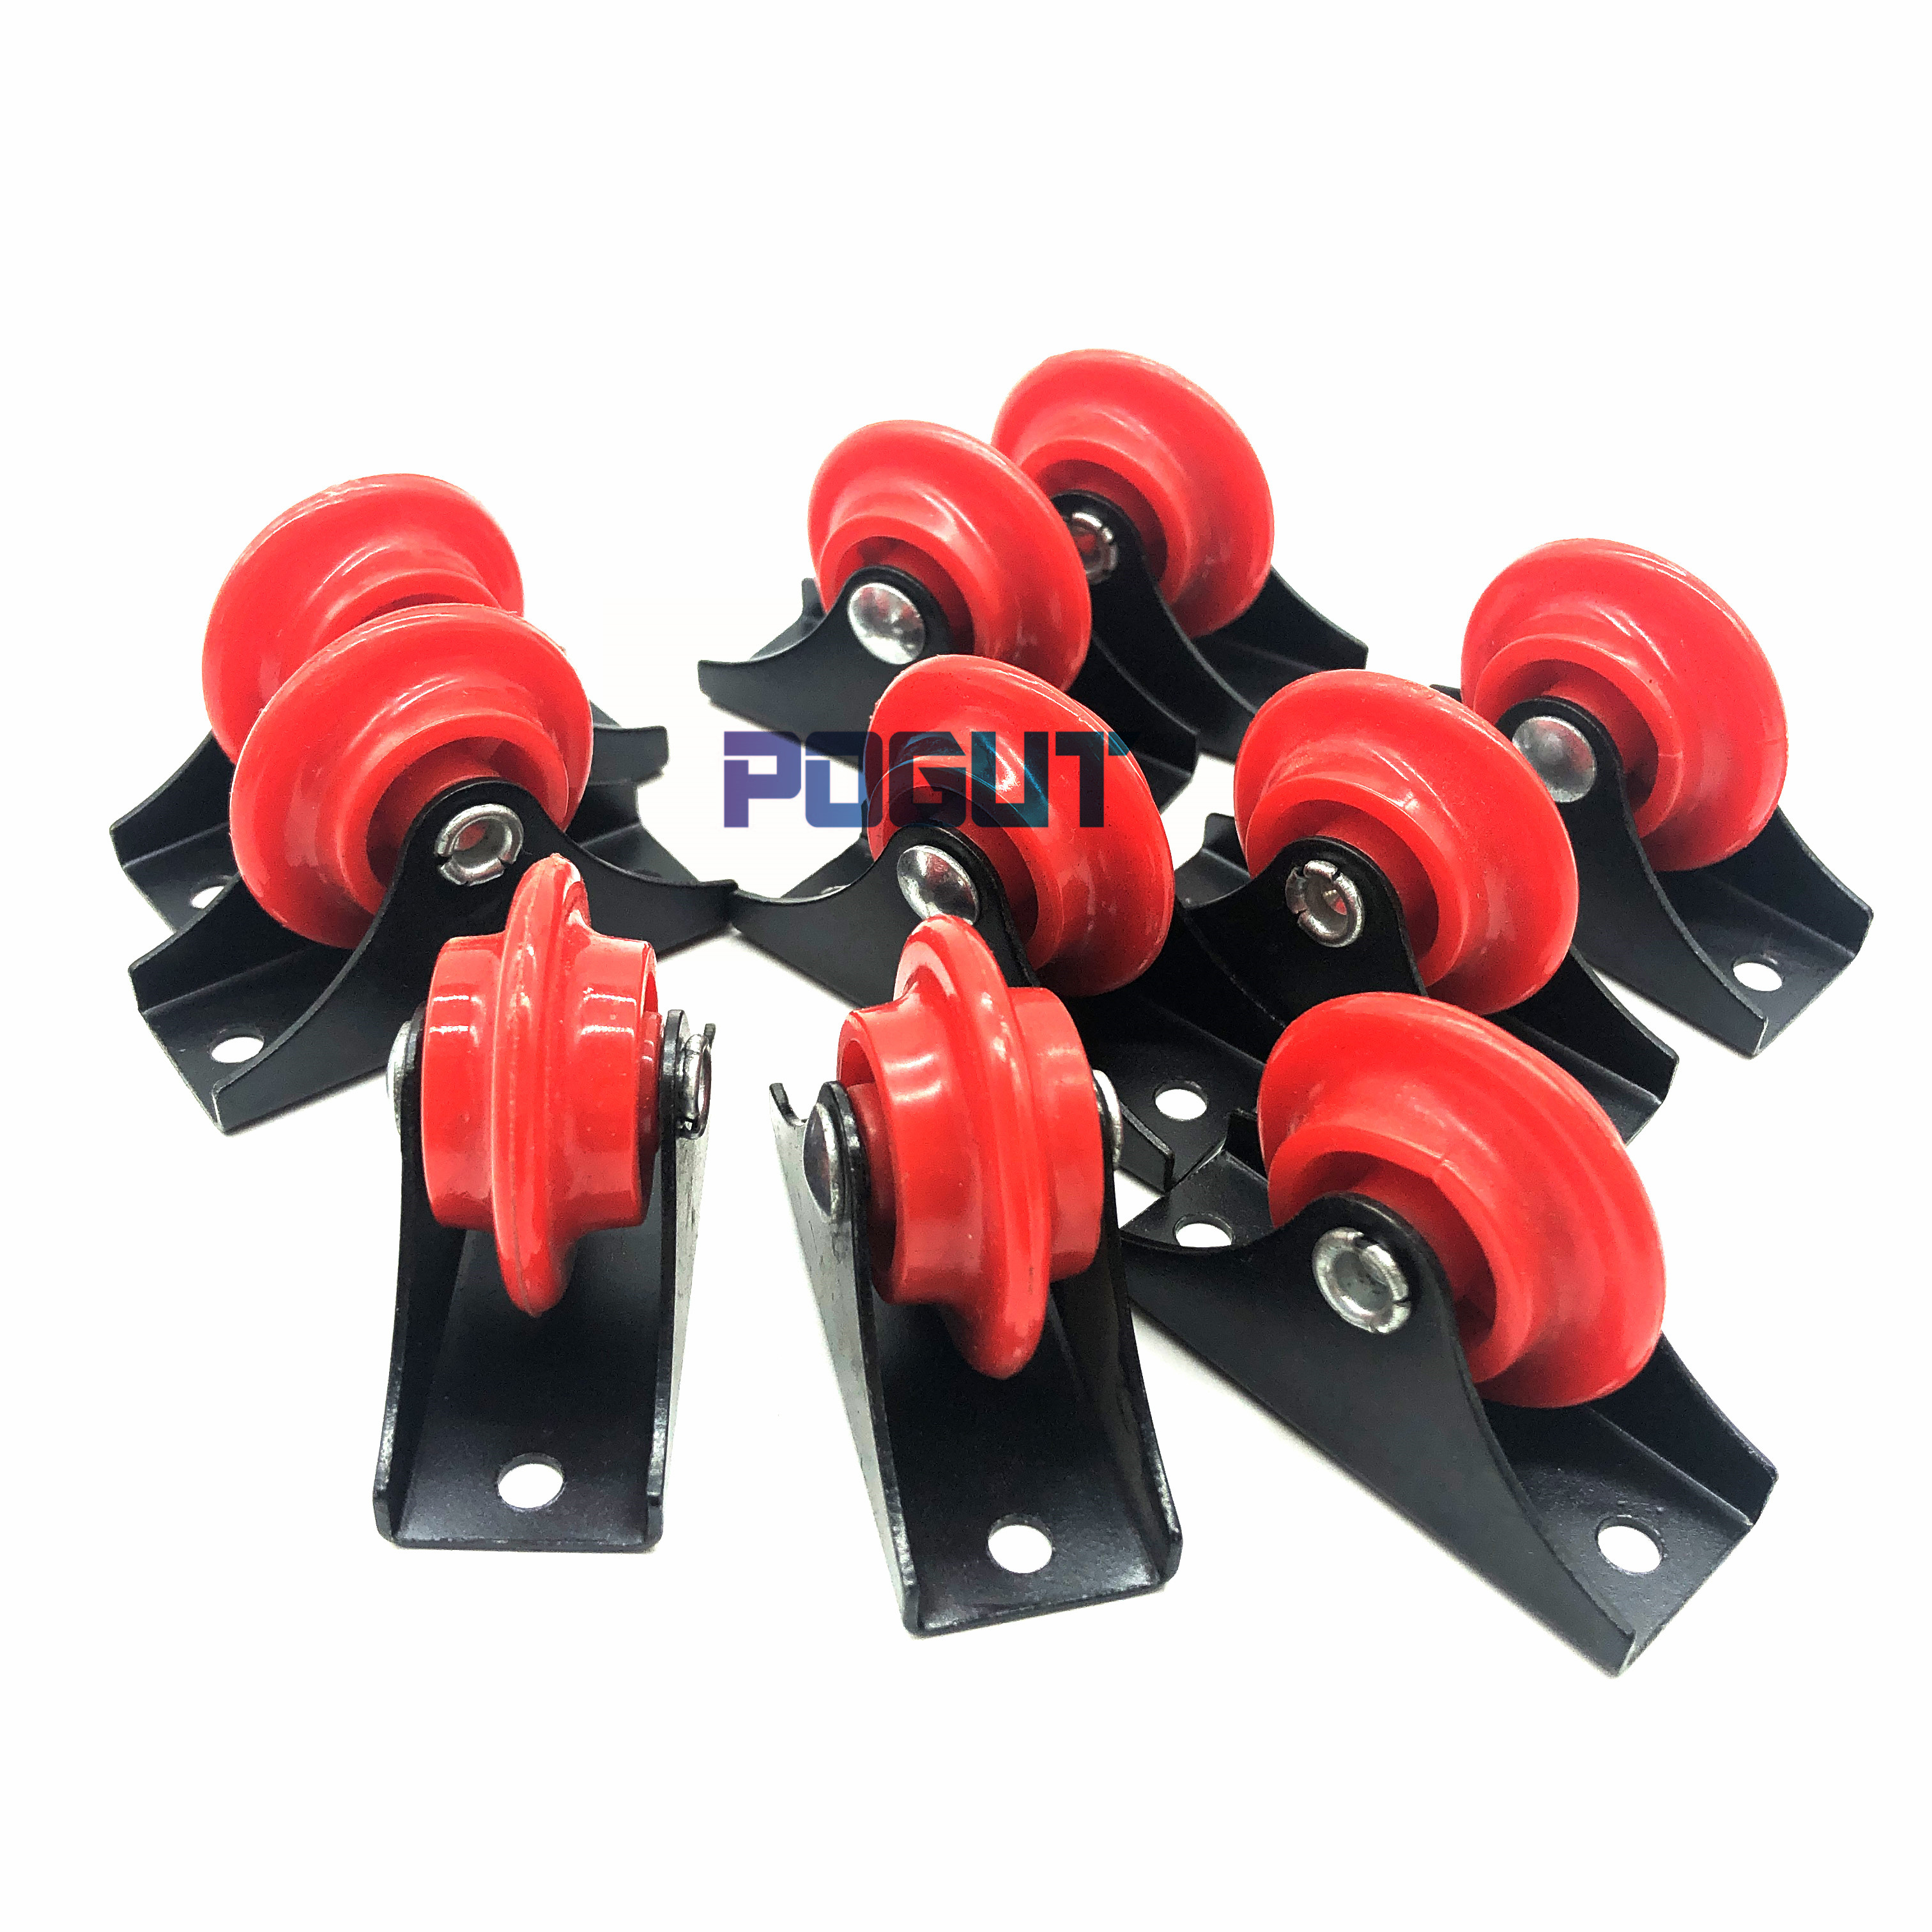 10pcs Replacement Rubber Roller For Glass Vertical Washing Machine